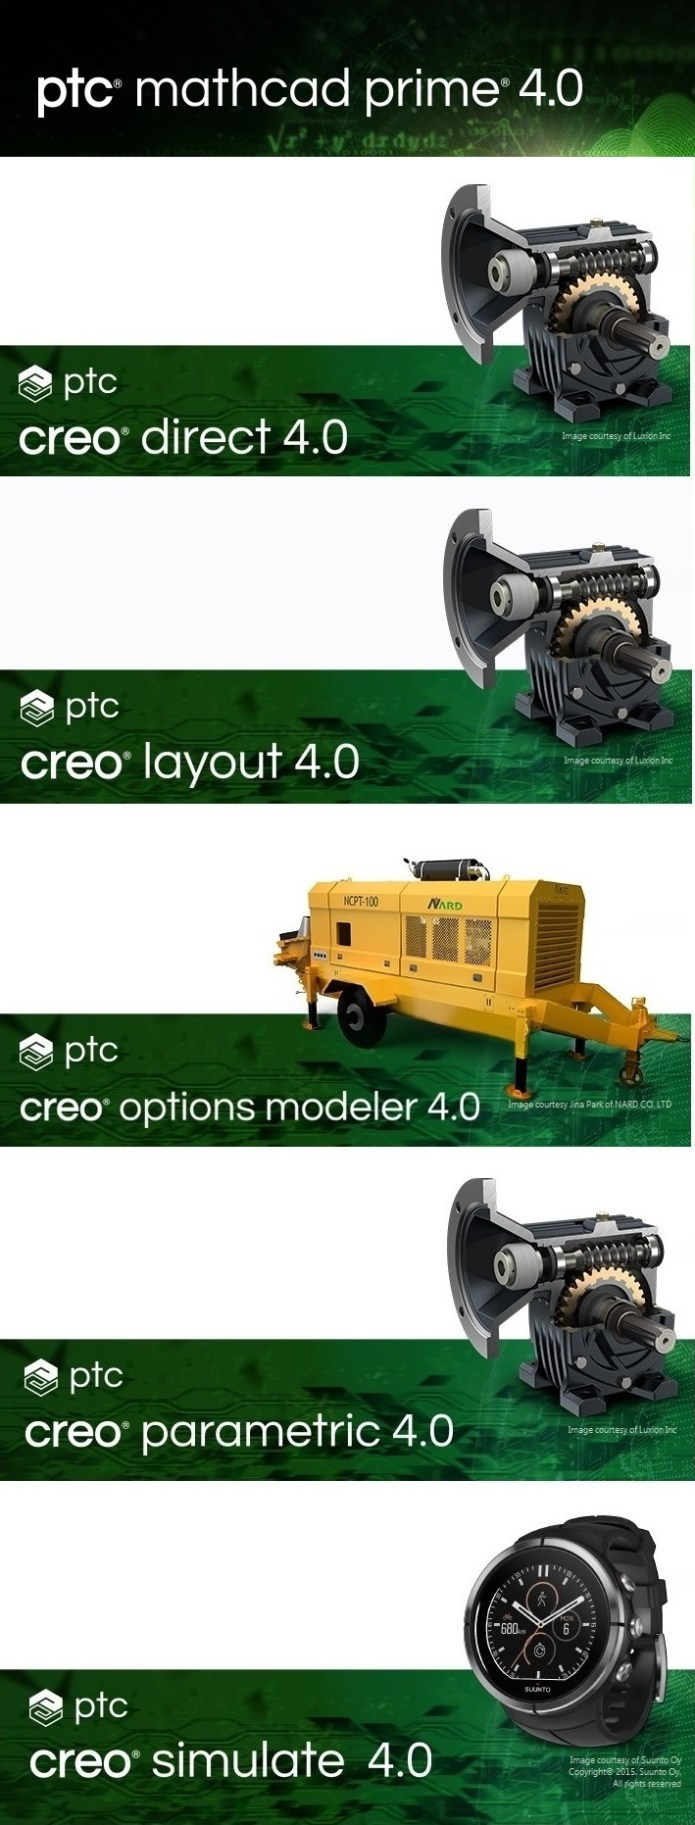 PTC Creo 4.0 M040 win64 full license forever